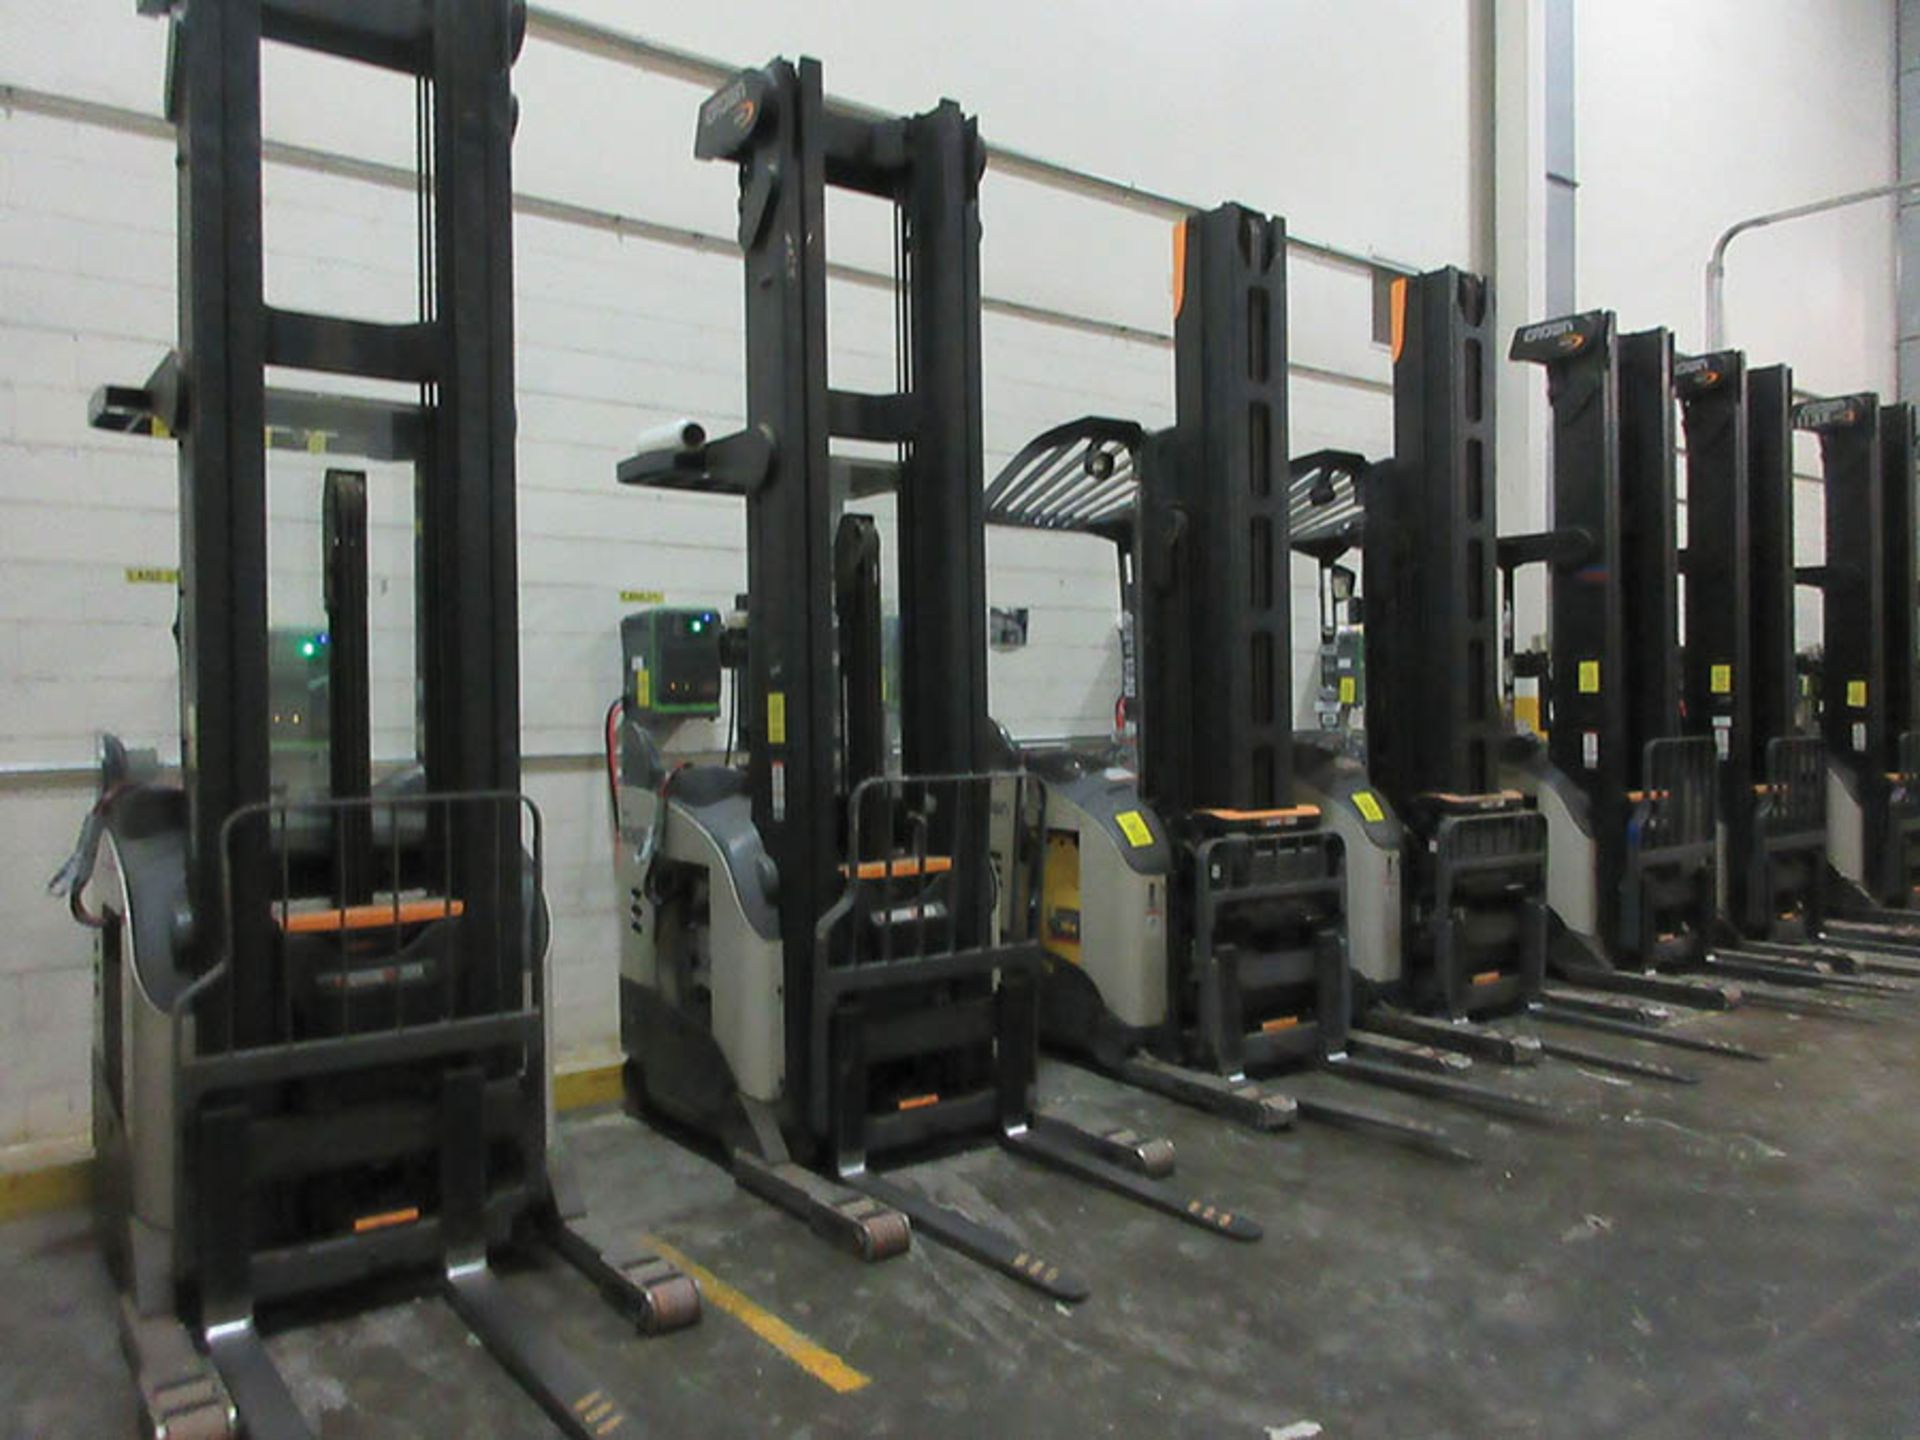 Lot 57 - 2016 CROWN REACH TRUCK, 4,500 LB. CAP., MODEL: RR5725-45, 36V., 140'' MAST COLLAPSED HEIGHT, 321''